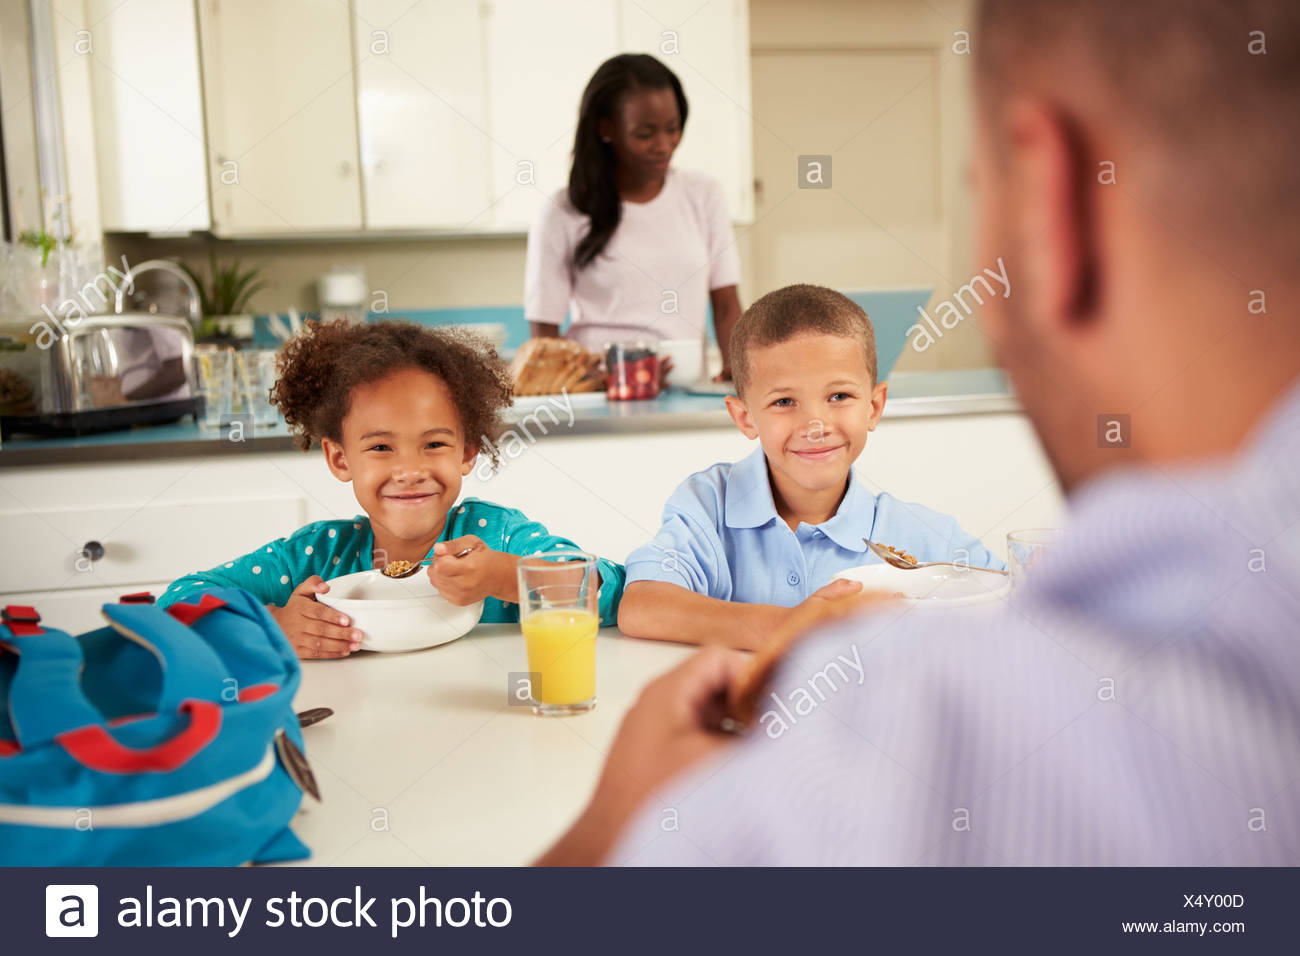 Family Eating Breakfast At Home Together - Stock Image